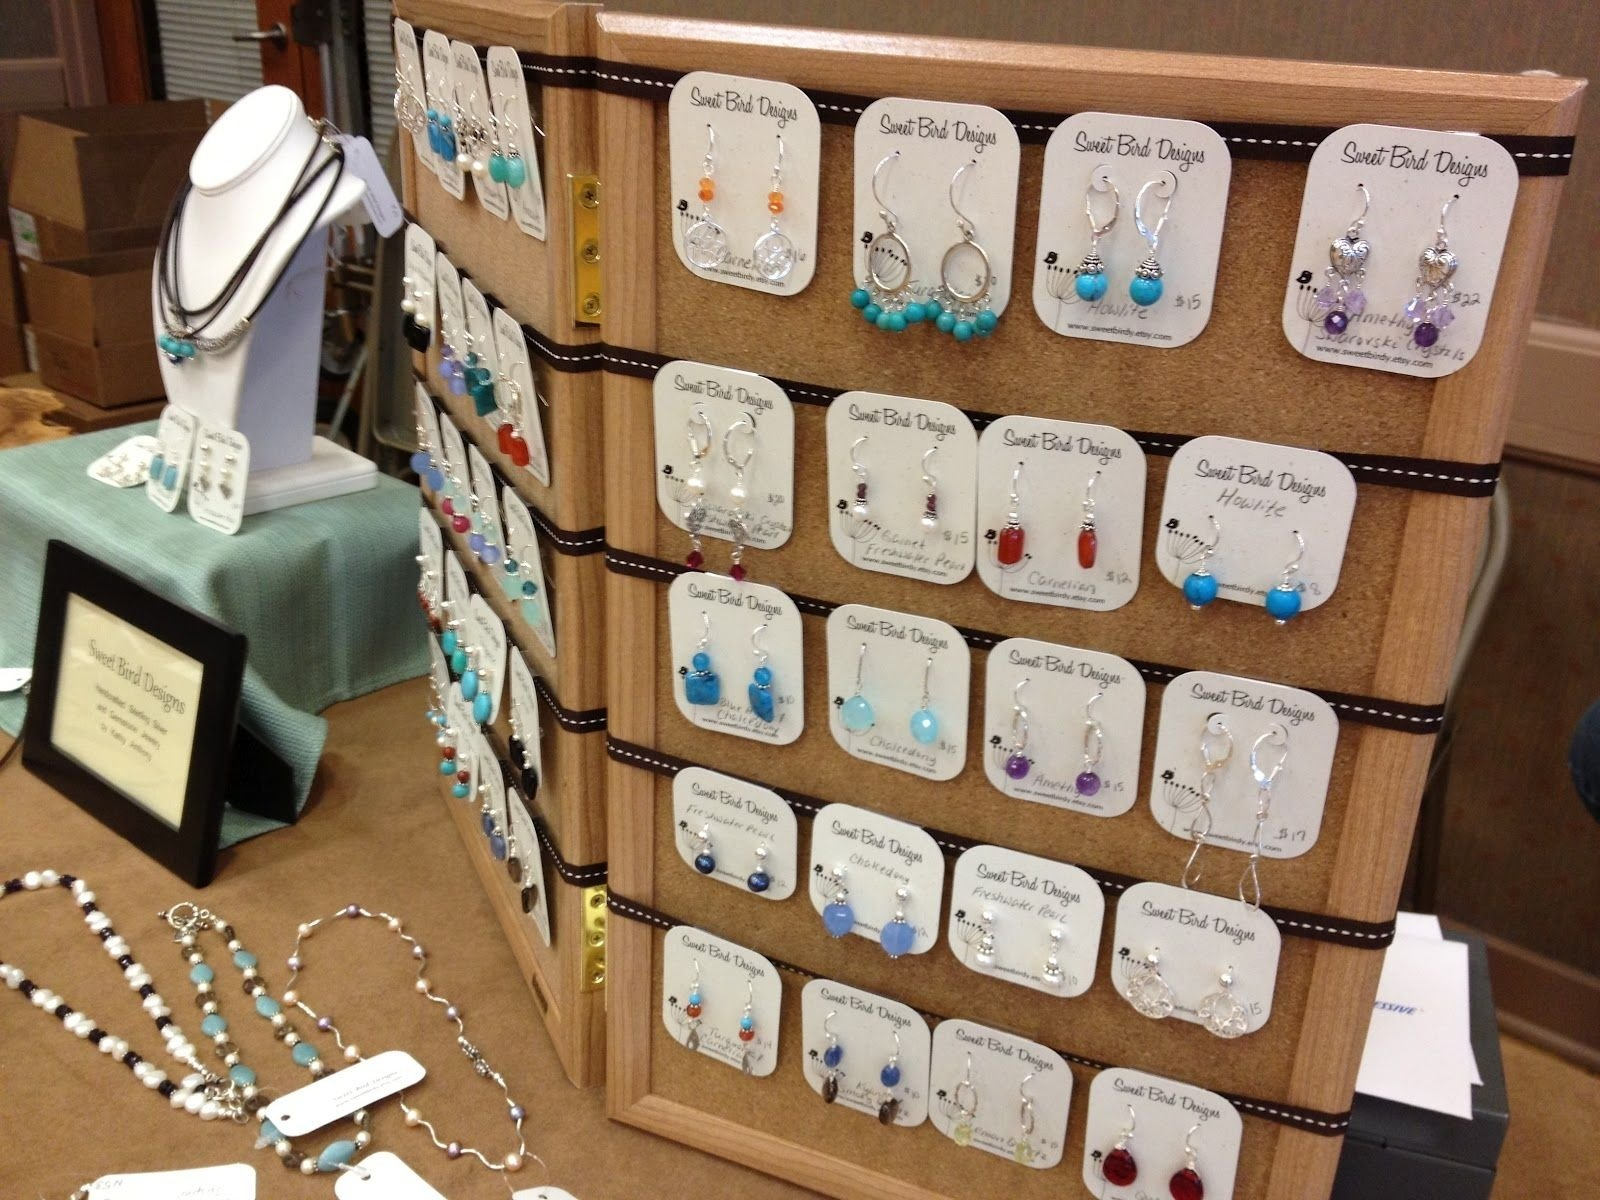 craft show display ideas | hope you find these helpful! i'm always